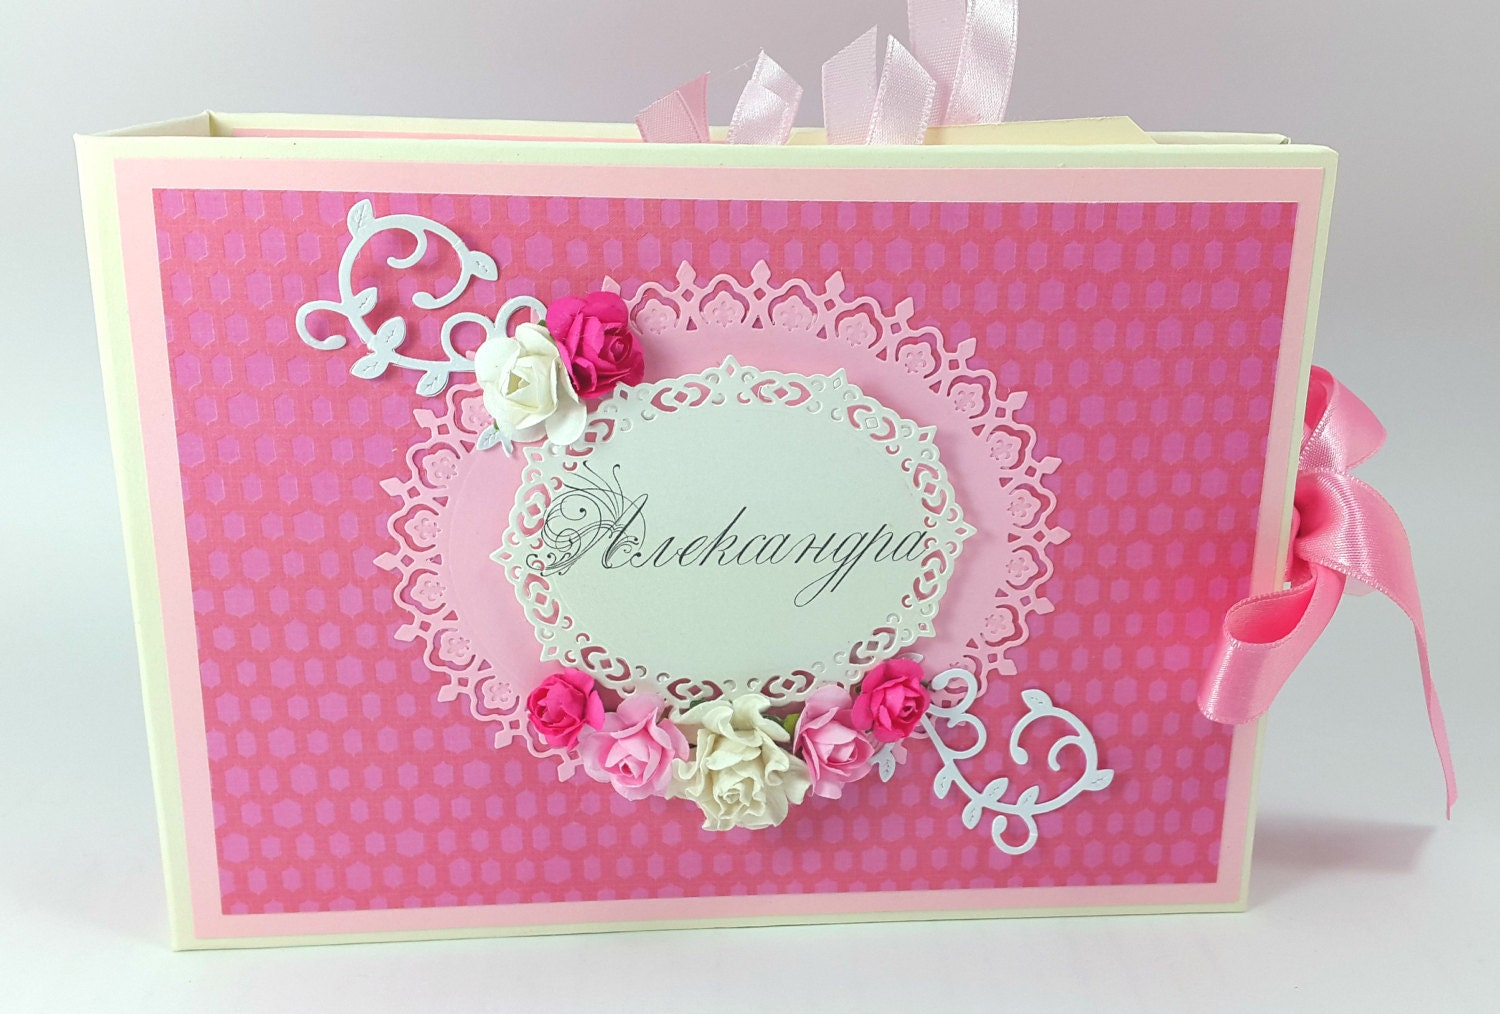 How to scrapbook baby book - Sold By Kastilohandmade